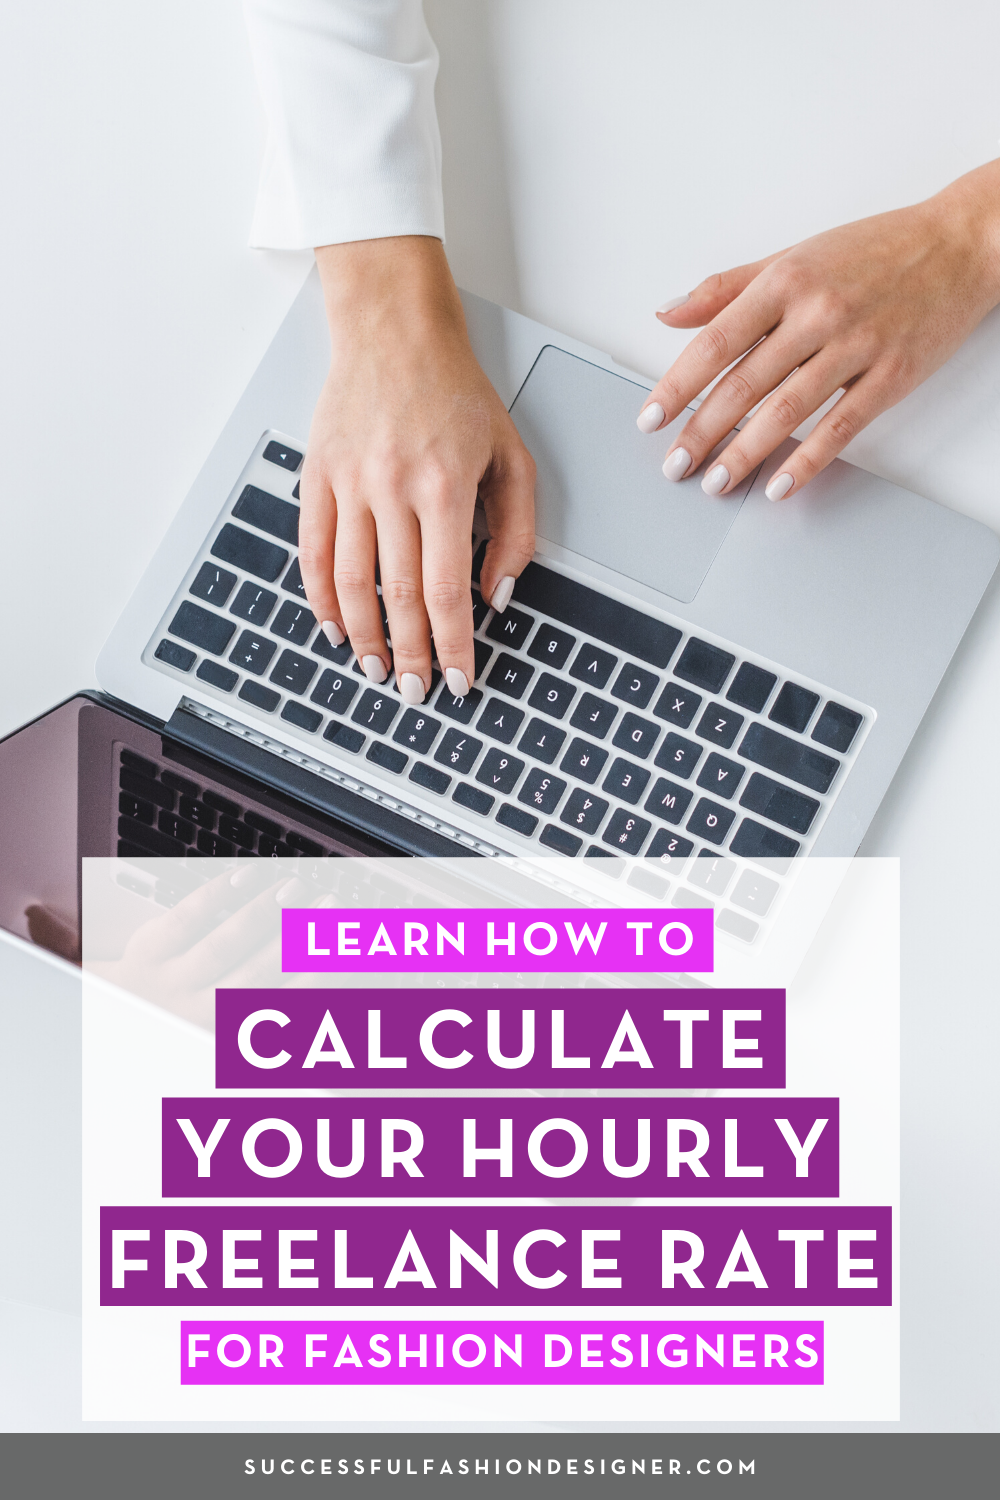 How To Calculate Your Hourly Freelance Rate For Fashion Designers Courses Free Tutorials On Adobe Illustrator Tech Packs Freelancing For Fashion Designer Career In Fashion Designing Fashion Design